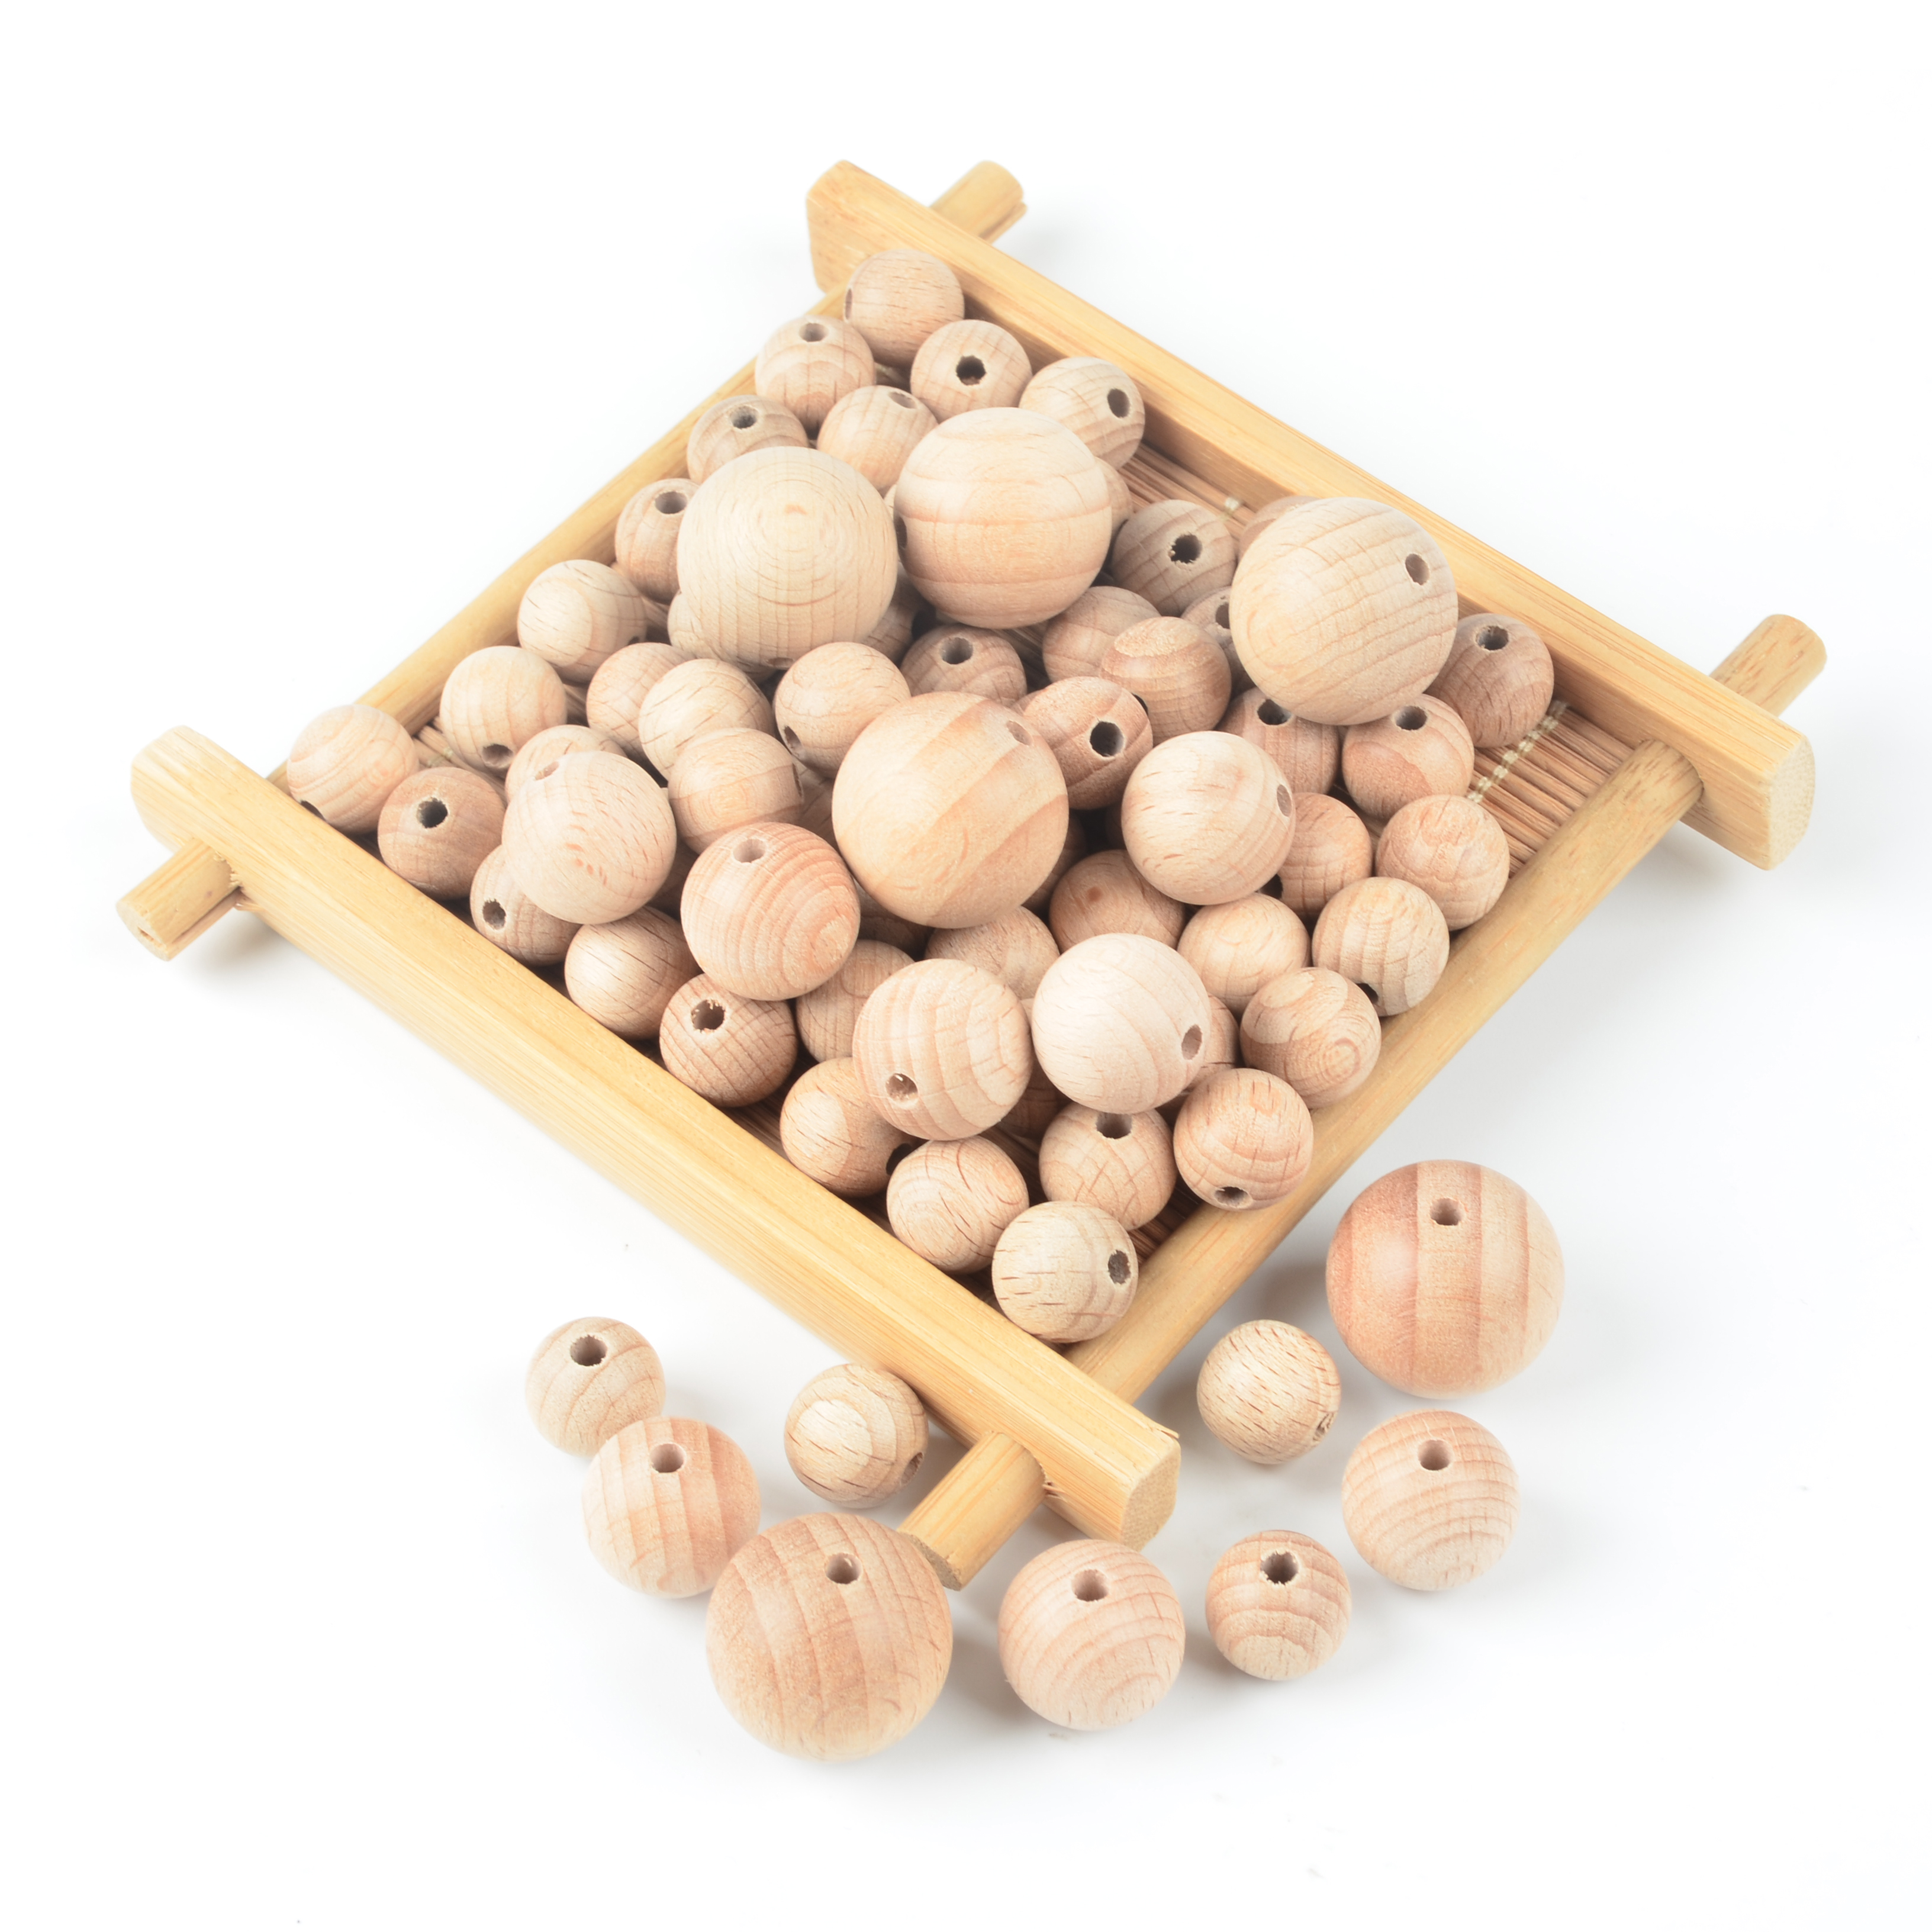 50pcs Wooden Beads Baby Teether Teething Beads 12/15/20mm Natural Ball Round Necklace Accessories Jewelry Making